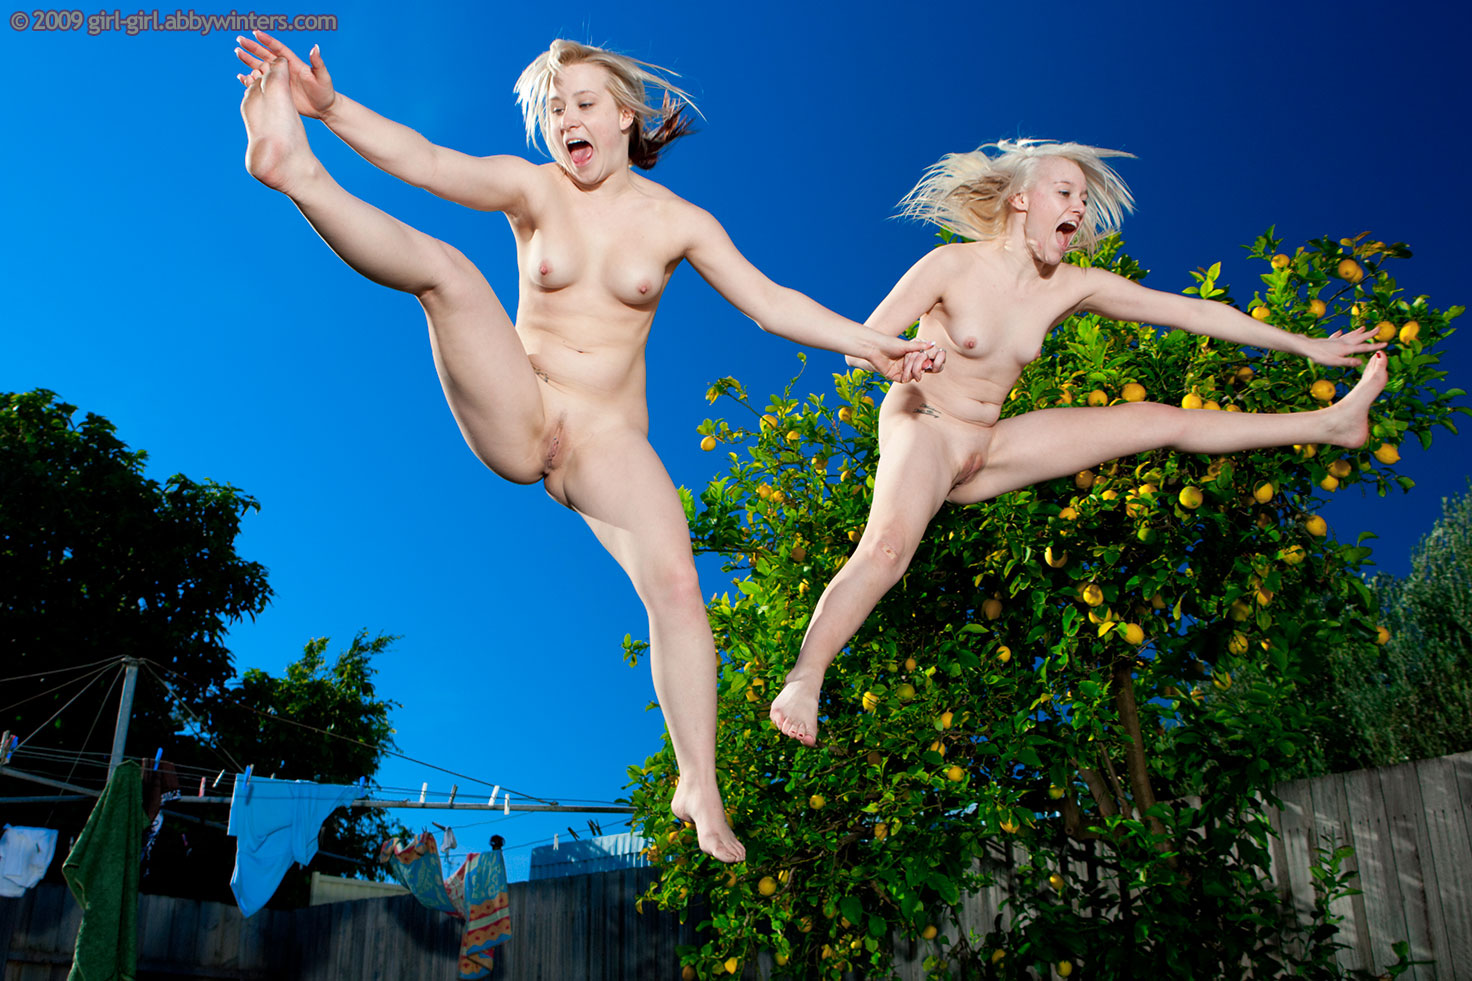 women naked jumping on trampoline jpg 1500x1000